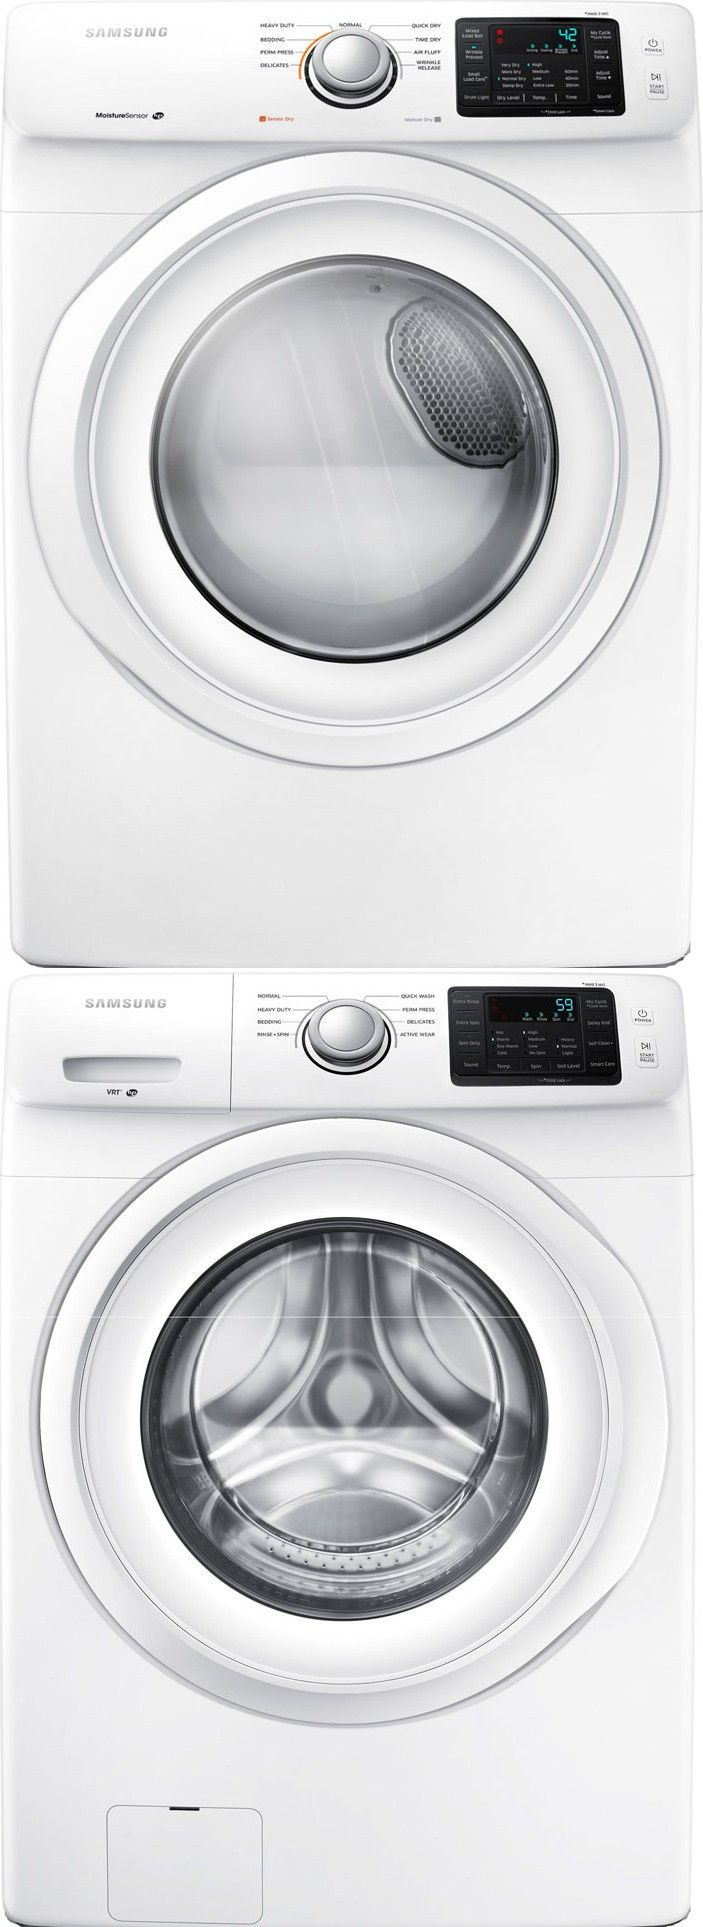 Samsung WF42H5000AW Front Load Washer & DV42H5000EW Electric Dryer w/Stacking Kit